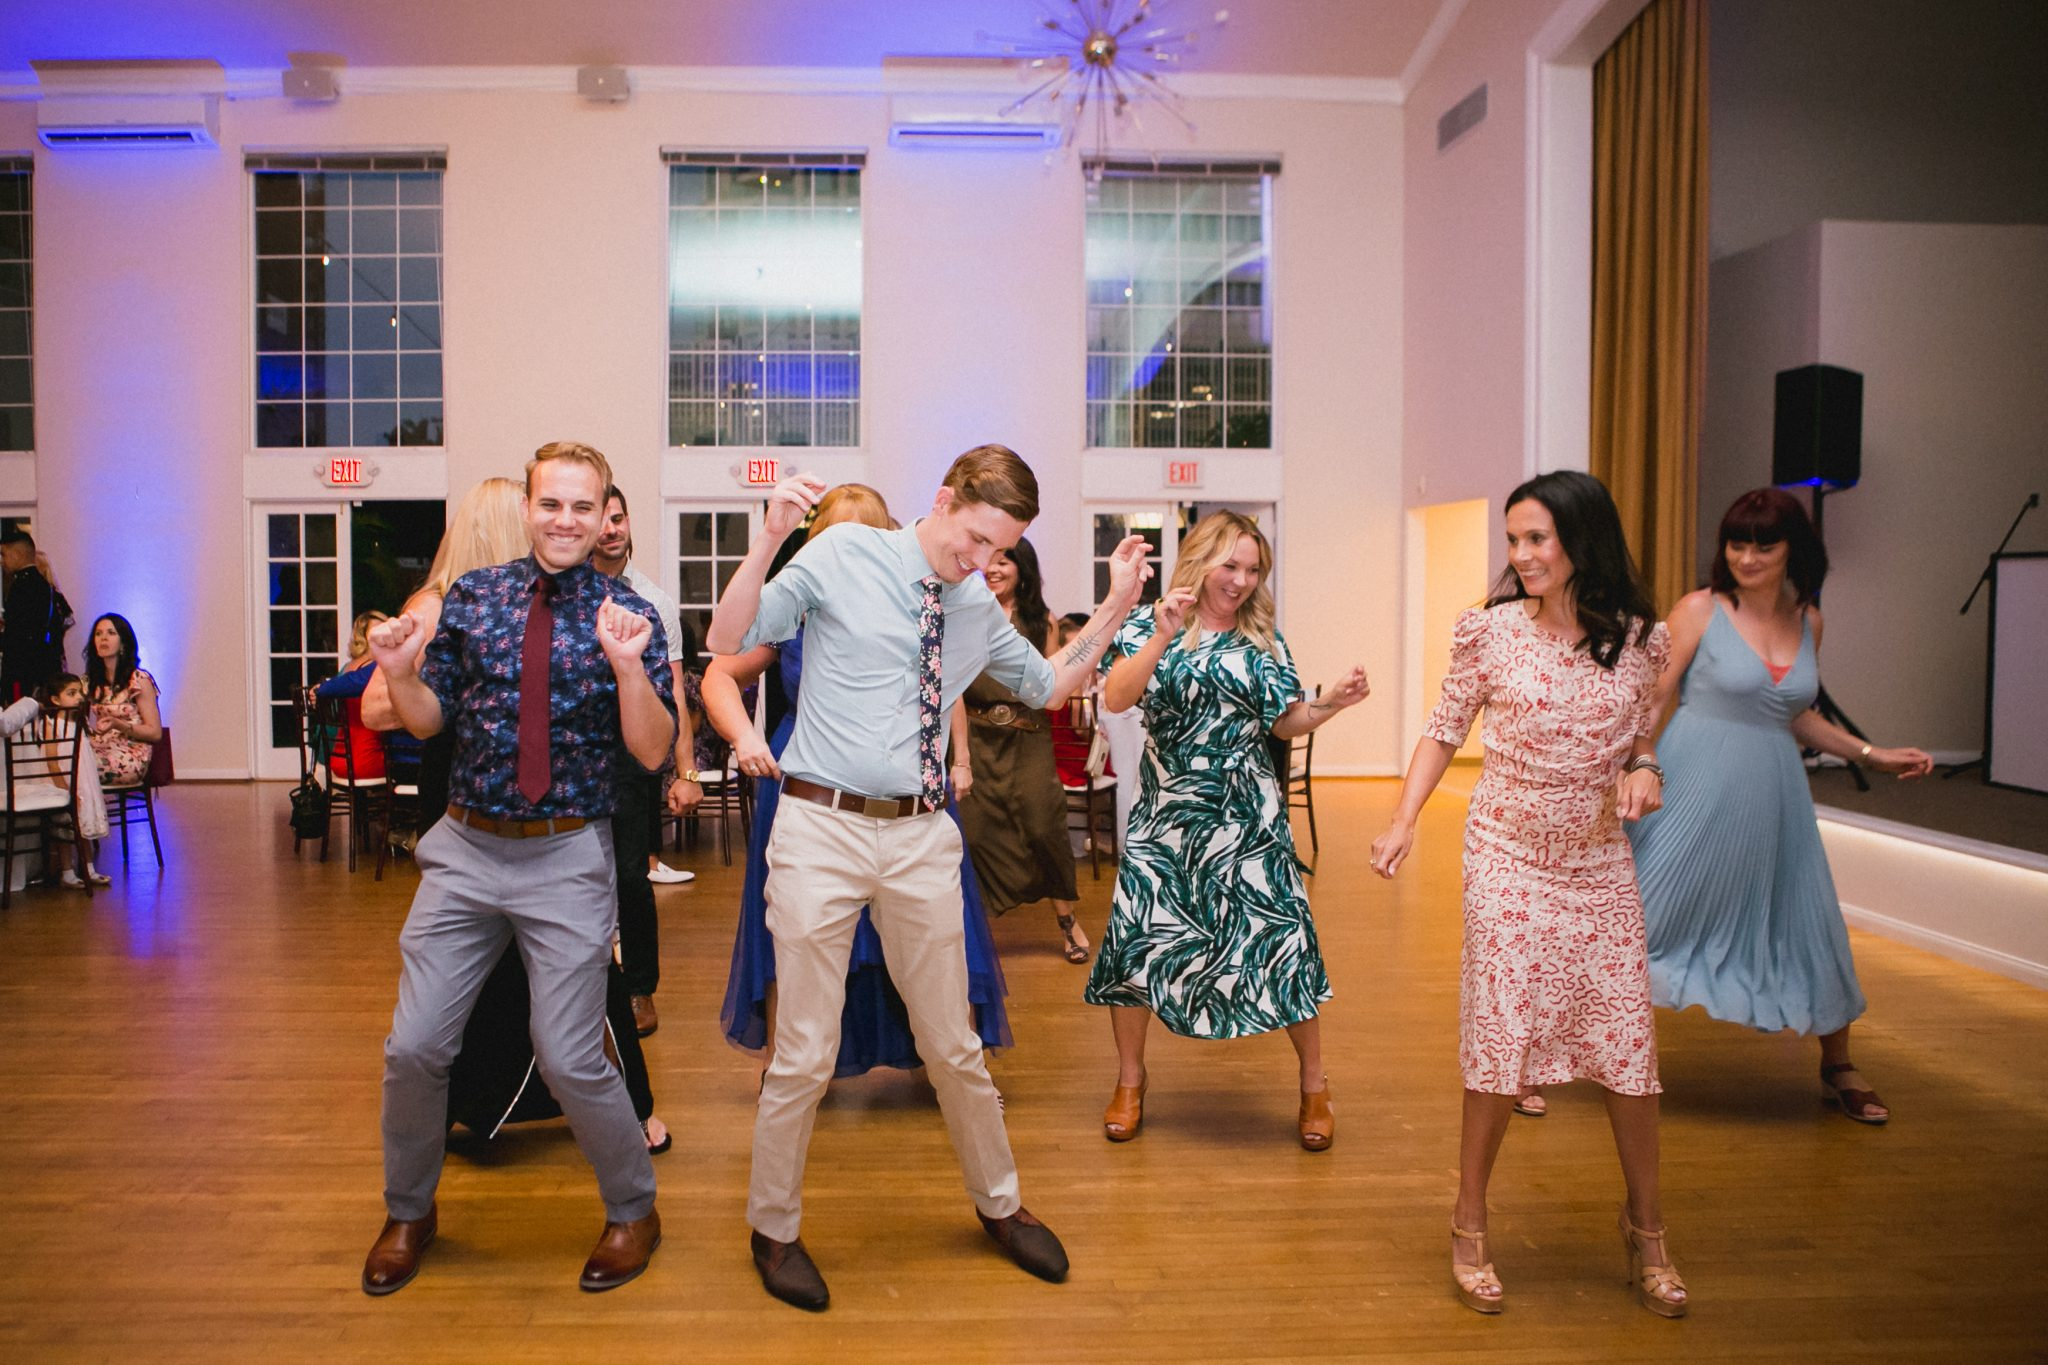 Wedding guests doing the cha cha slide at a reception